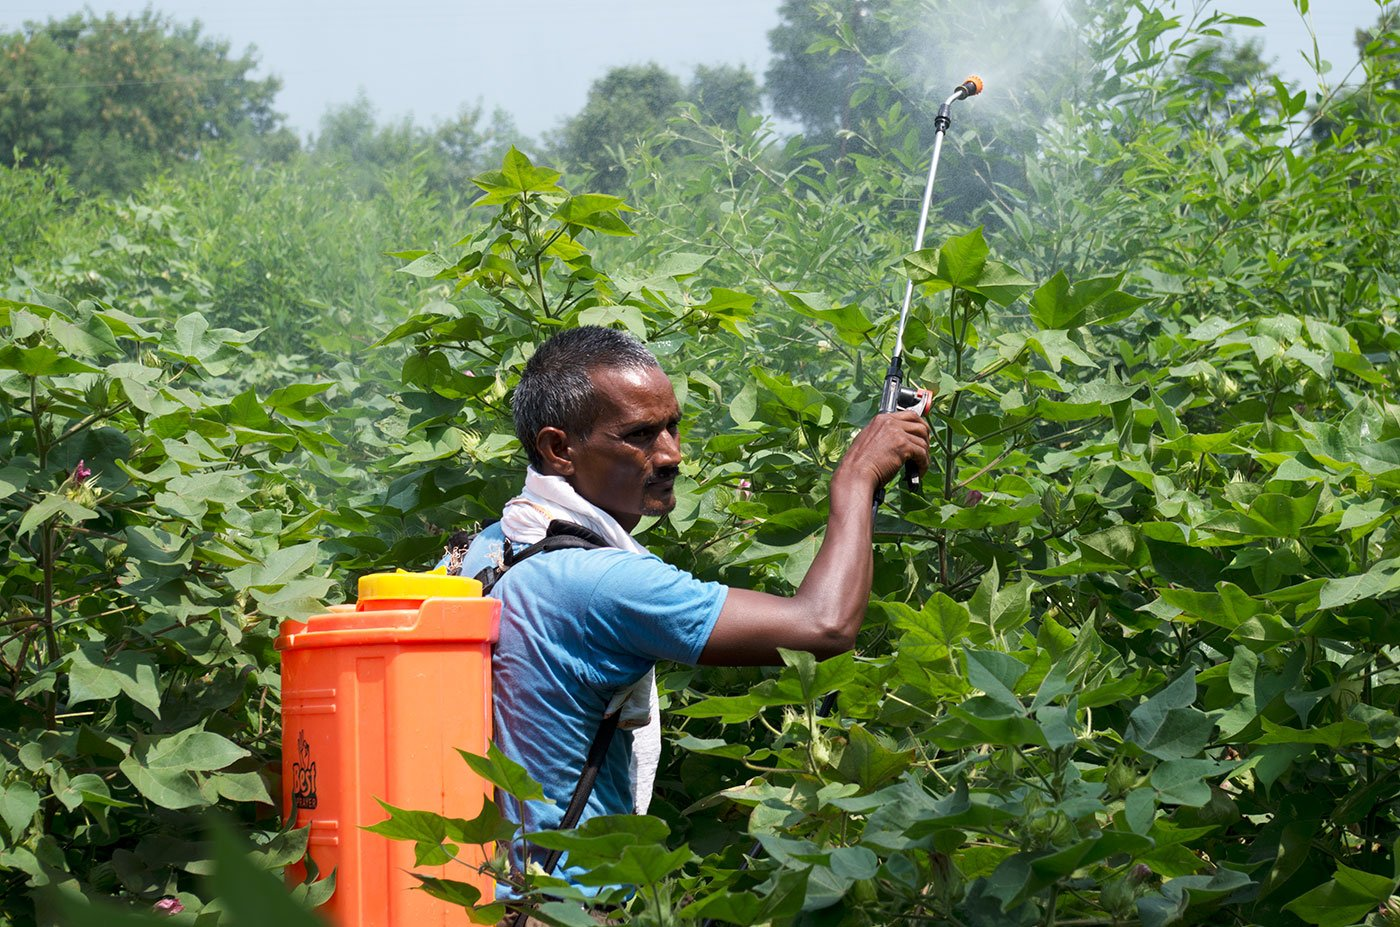 Narayan Kotrange, a tenant farmer of 10-acre in Manoli, demonstrates spraying in his fields from a battery-operated pump in village Manoli.